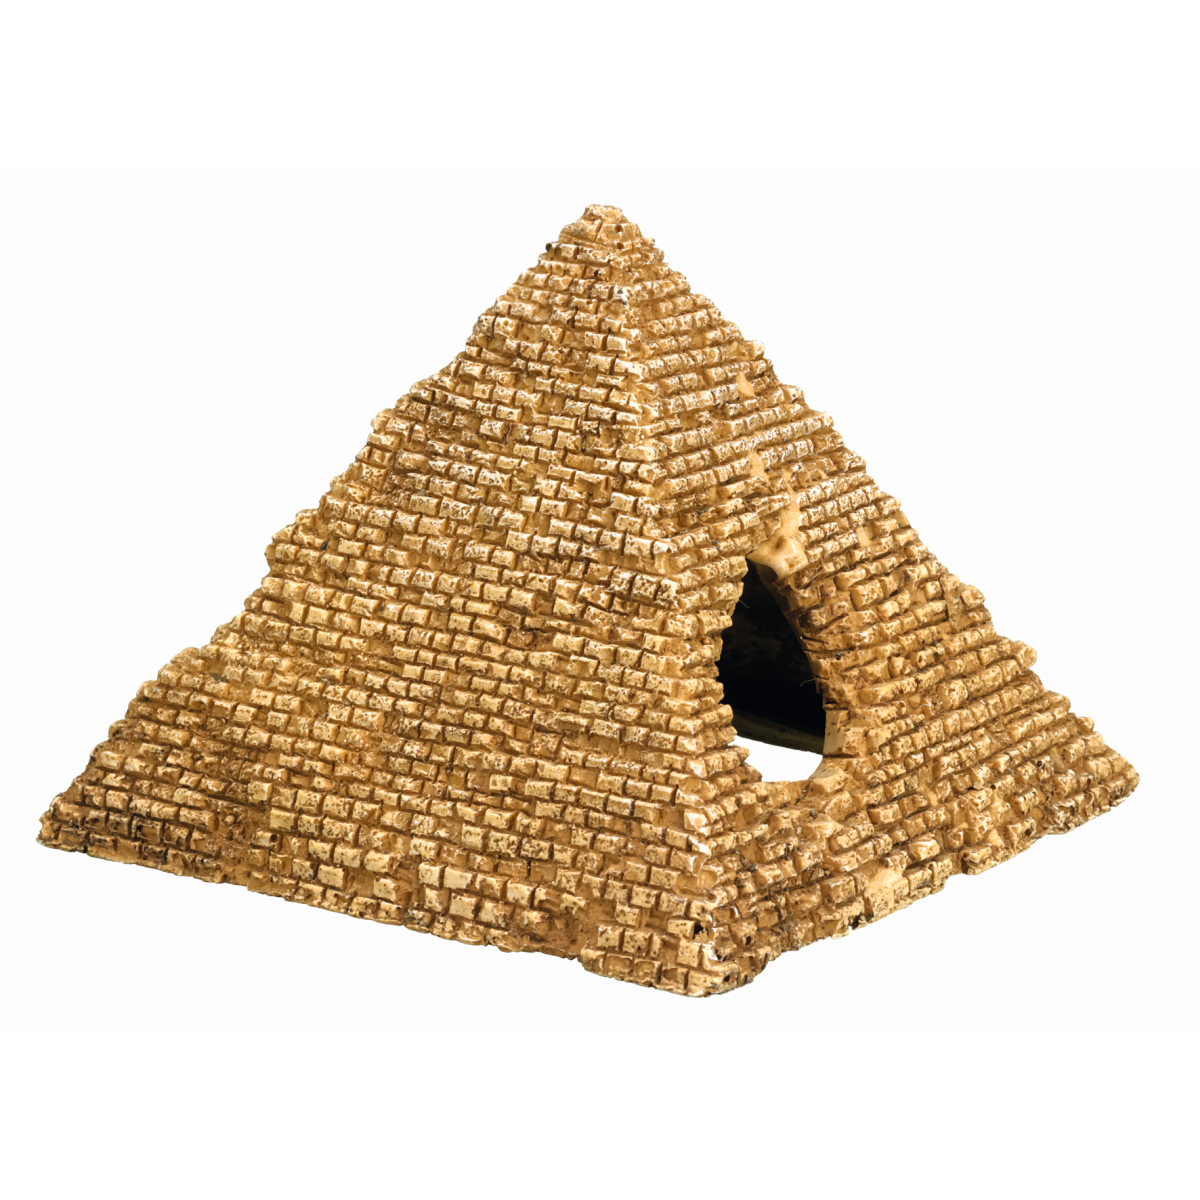 NB PYRAMID 105X100X80MM 00001